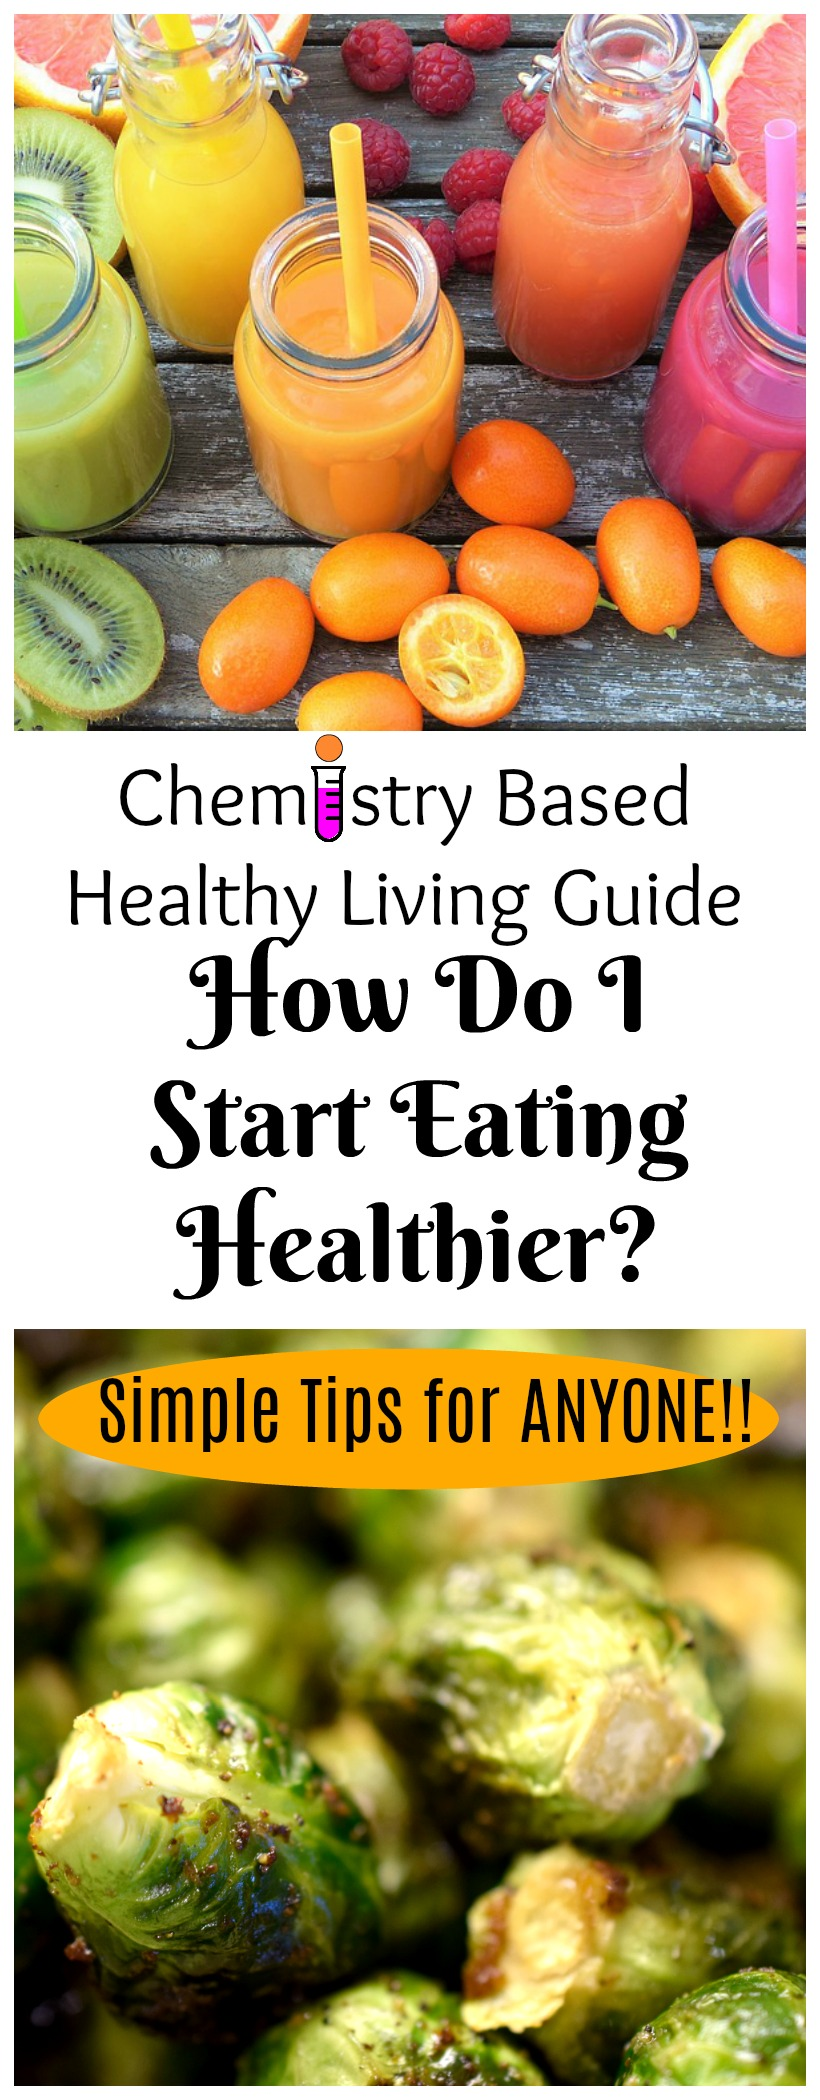 Chemistry Based Healthy Living Guide How do I start eating healthier These are the easiest tips based on science to get started on chemistrycachet.com #healthier #healthtips